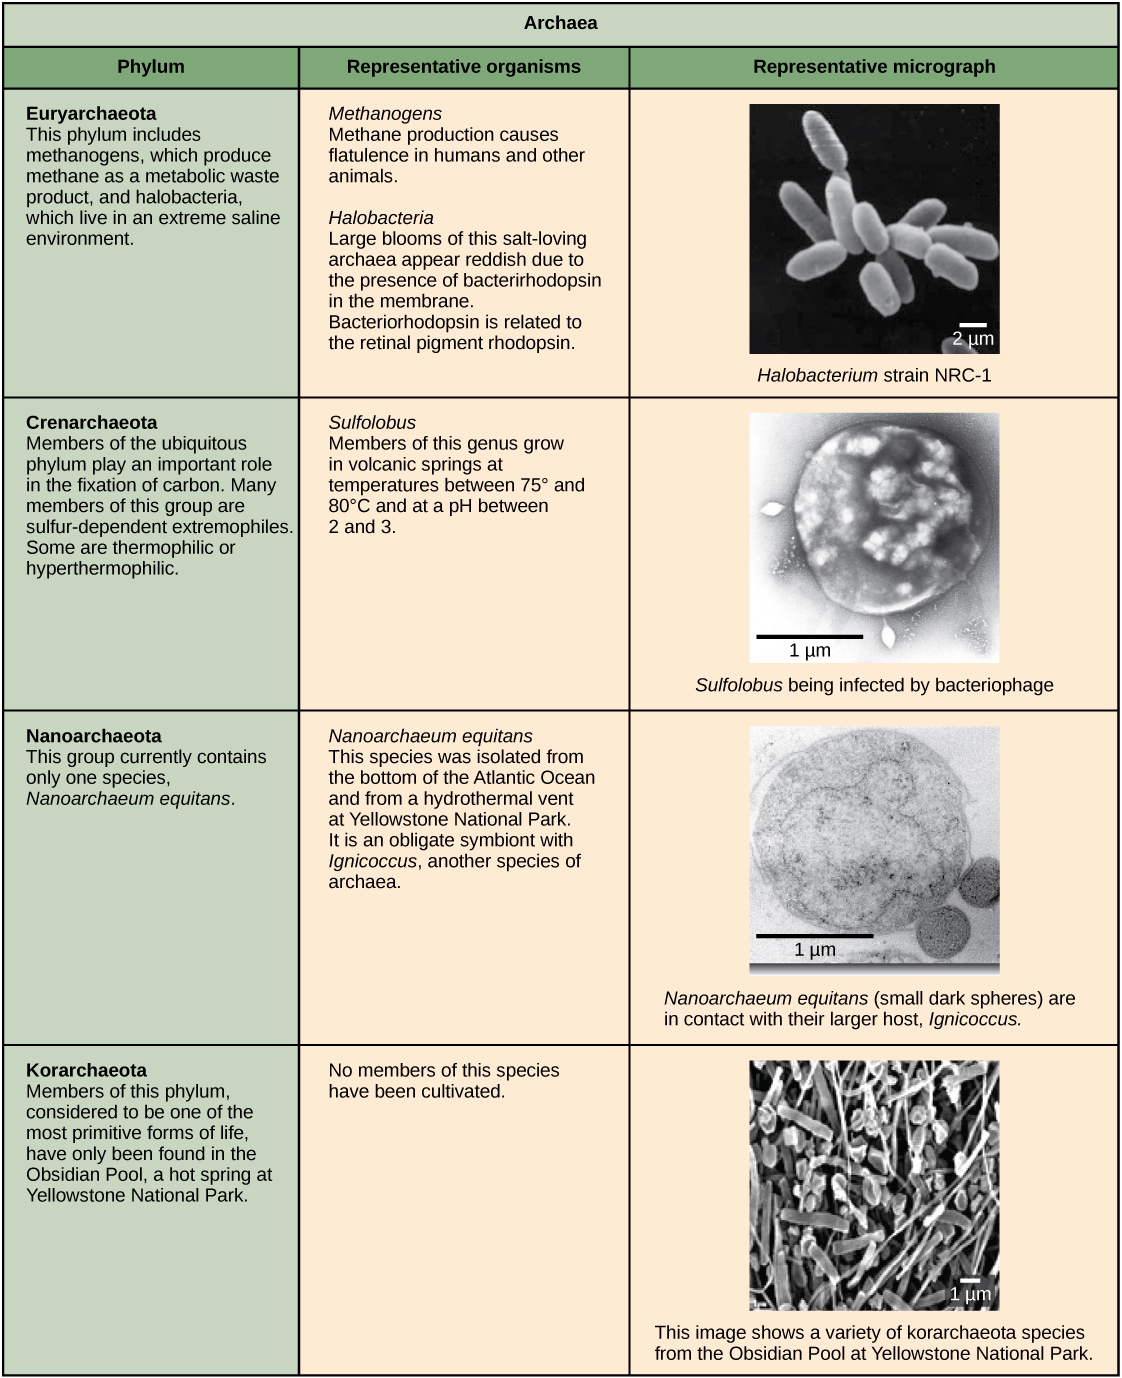 Characteristics of the four phyla of archaea are described. Euryarchaeotes includes methanogens, which produce methane as a metabolic waste product, and halobacteria, which live in an extreme saline environment. Methanogens cause flatulence in humans and other animals. Halobacteria can grow in large blooms that appear reddish, due to the presence of bacterirhodopsin in the membrane. Bacteriorhodopsin is related to the retinal pigment rhodopsin. Micrograph shows rod-shaped Halobacterium. Members of the ubiquitous Crenarchaeotes phylum play an important role in the fixation of carbon. Many members of this group are sulfur-dependent extremophiles. Some are thermophilic or hyperthermophilic. Micrograph shows cocci-shaped Sulfolobus, a genus which grows in volcanic springs at temperatures between 75° and 80°C and at a pH between 2 and 3. The phylum Nanoarchaeotes currently contains only one species, Nanoarchaeum equitans, which has been isolated from the bottom of the Atlantic Ocean, and from the a hydrothermal vent at Yellowstone National Park. It is an obligate symbiont with Ignococcus, another species of archaebacteria. Micrograph shows two small, round N. equitans cells attached to a larger Ignococcus cell. Korarchaeotes are considered to be one of the most primitive forms of life and so far have only been found in the Obsidian Pool, a hot spring at Yellowstone National Park. Micrograph shows a variety of specimens from this group which vary in shape.